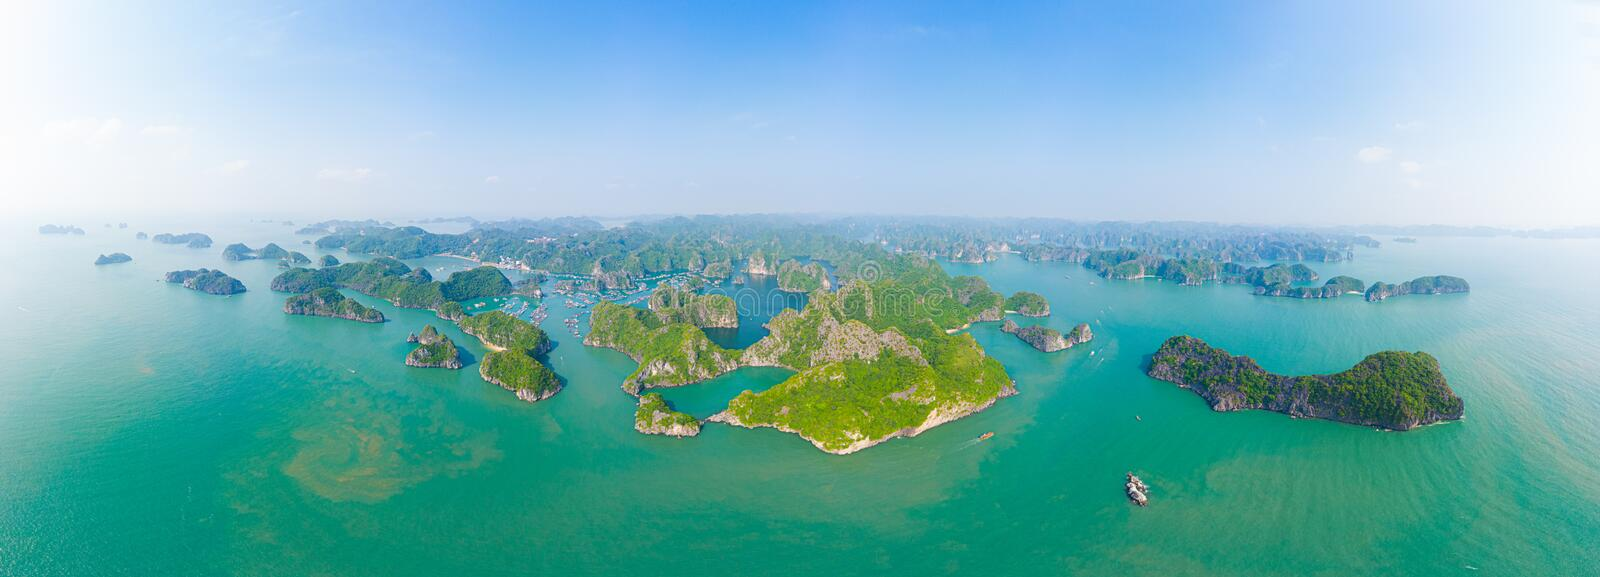 Aerial view of Ha Long Bay Cat Ba island, unique limestone rock islands and karst formation peaks in the sea, famous tourism stock image